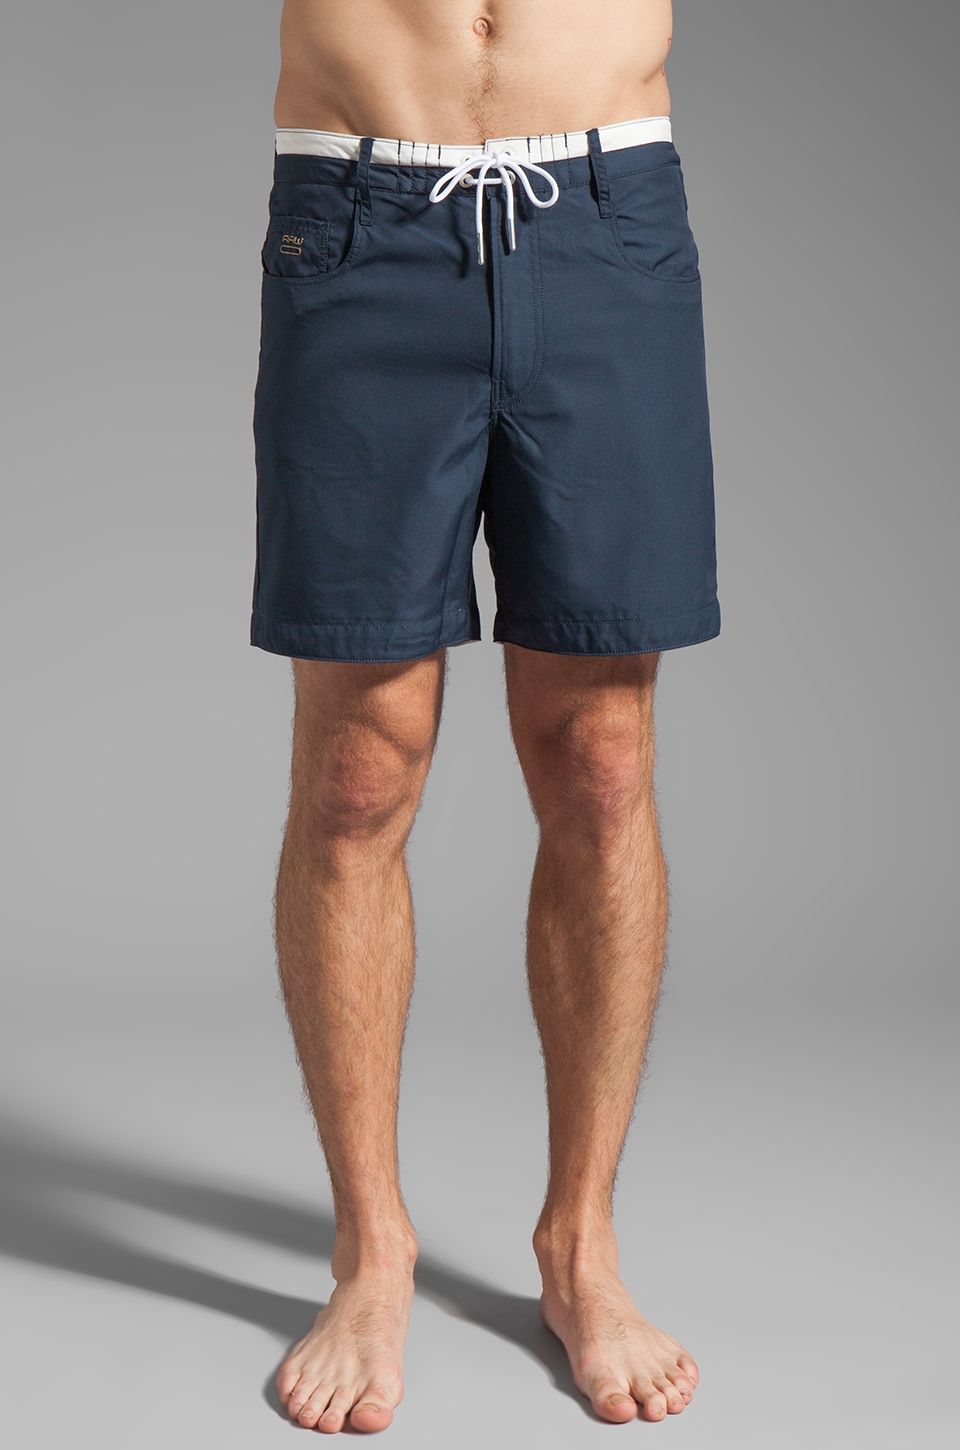 G-Star Iconic Swim Short in Navy